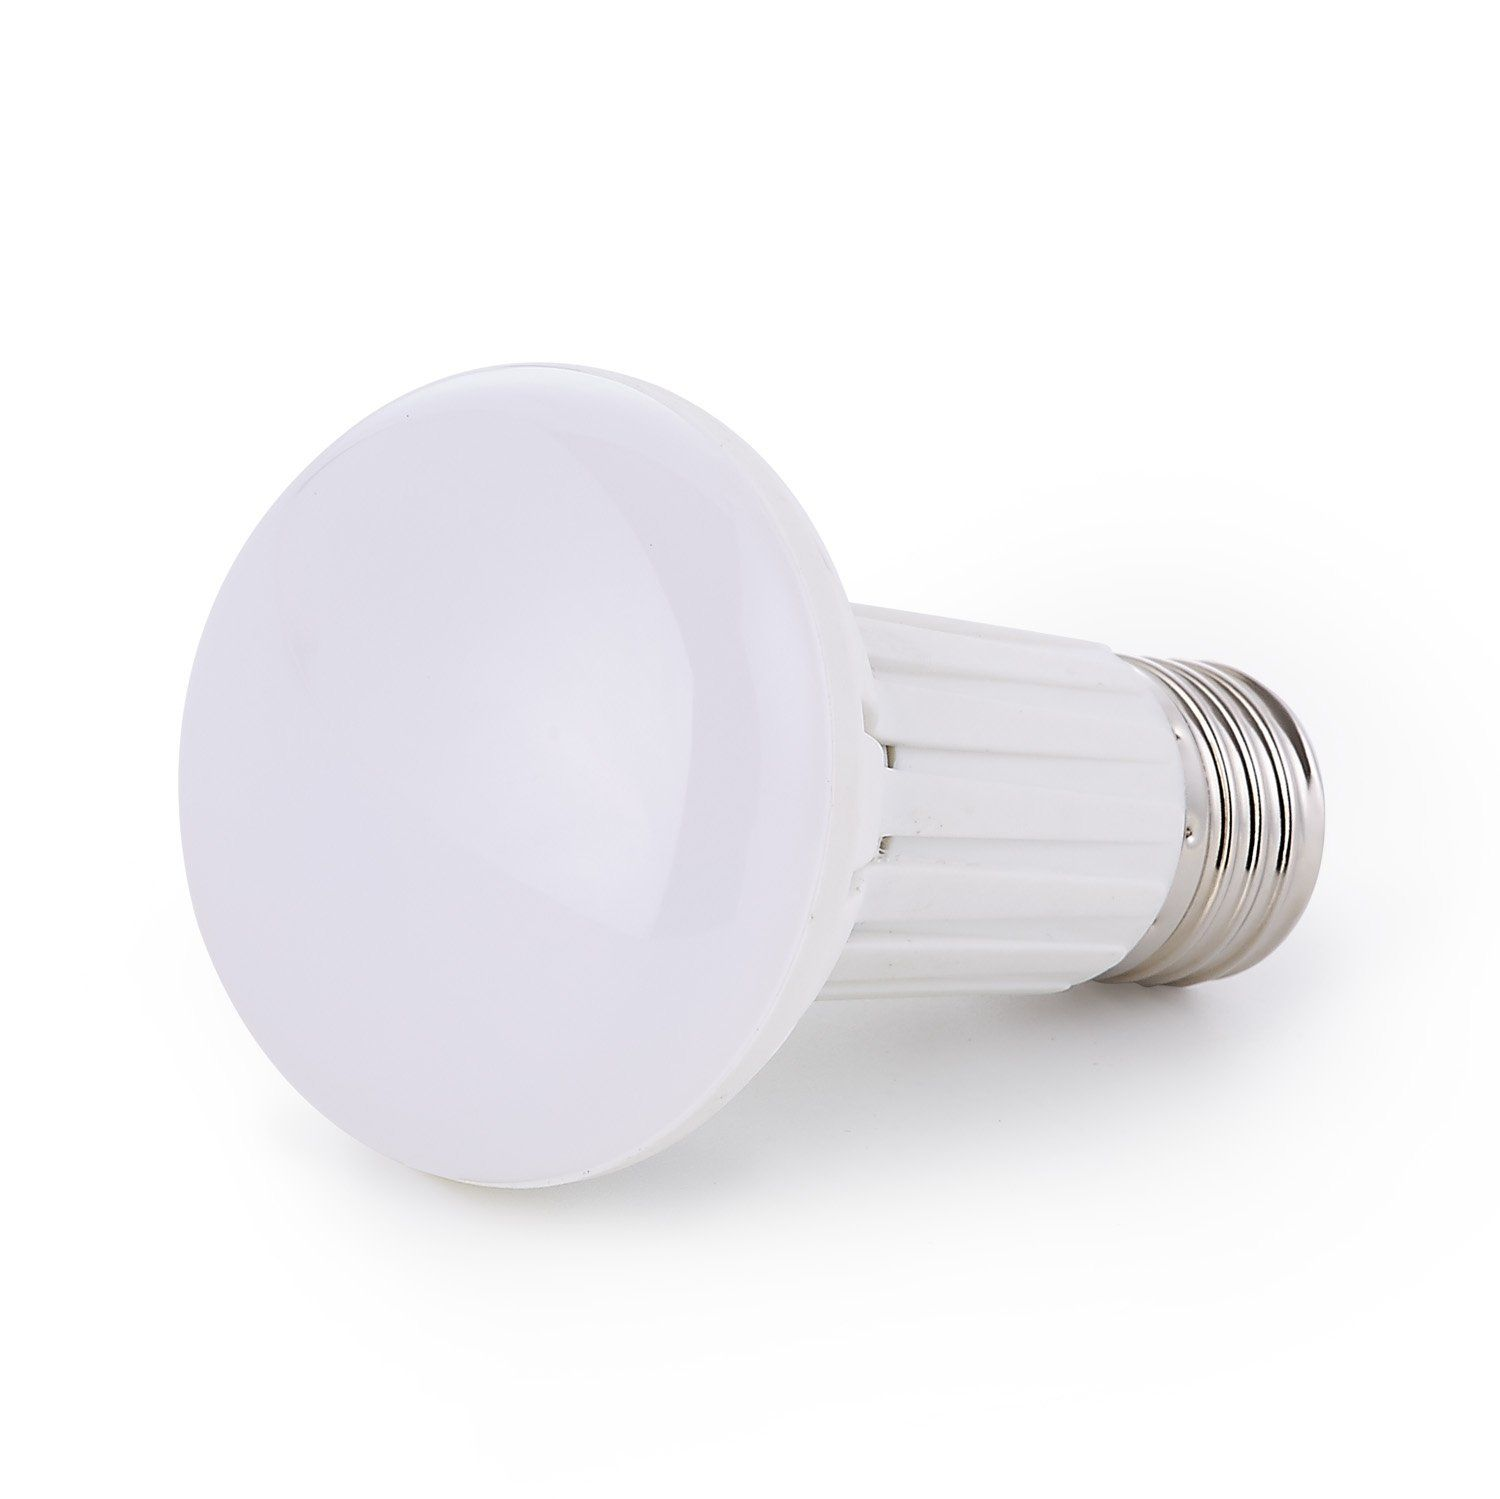 E26 Medium Base Great For Kitchenbr20 Led Bulb Nondimmable 5w 45w Equivalent 2700k Warm White Glow 50 Light Bulb Pendant Light Fixtures Indoor Outdoor Lighting